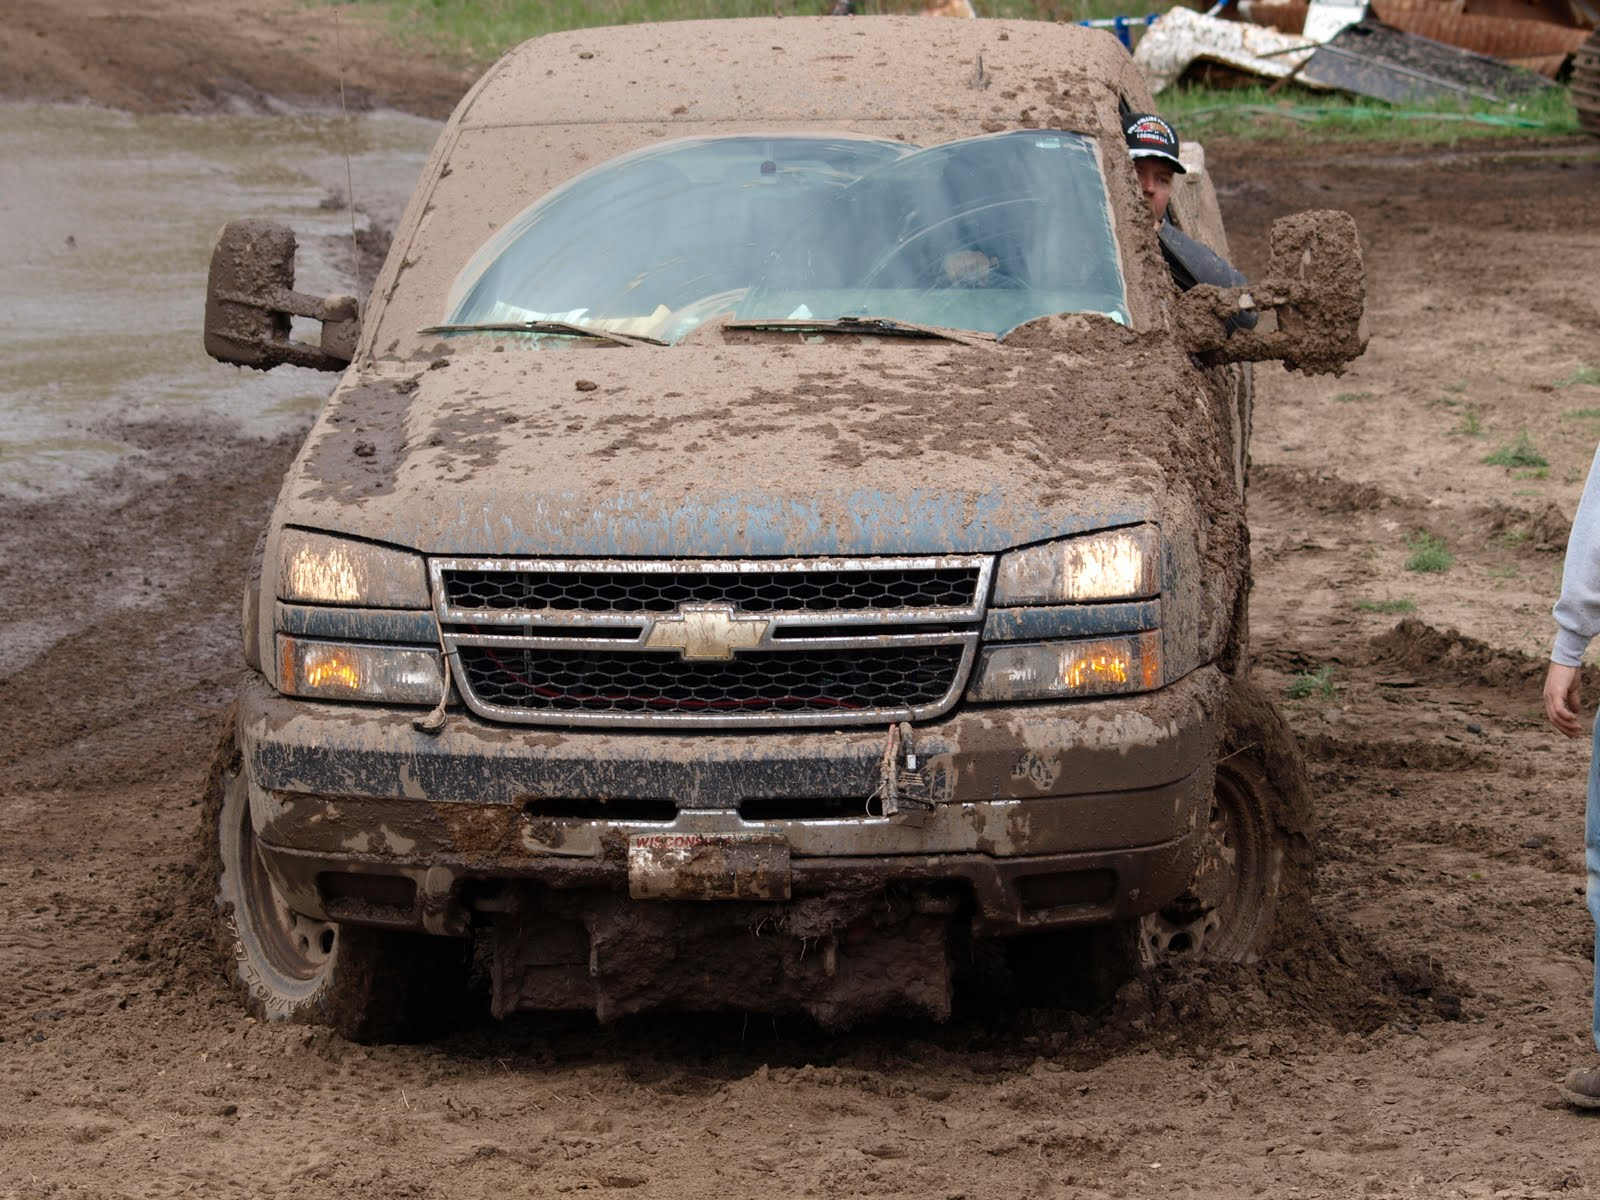 4 Heavy-Duty Truck Customizations For Mudding